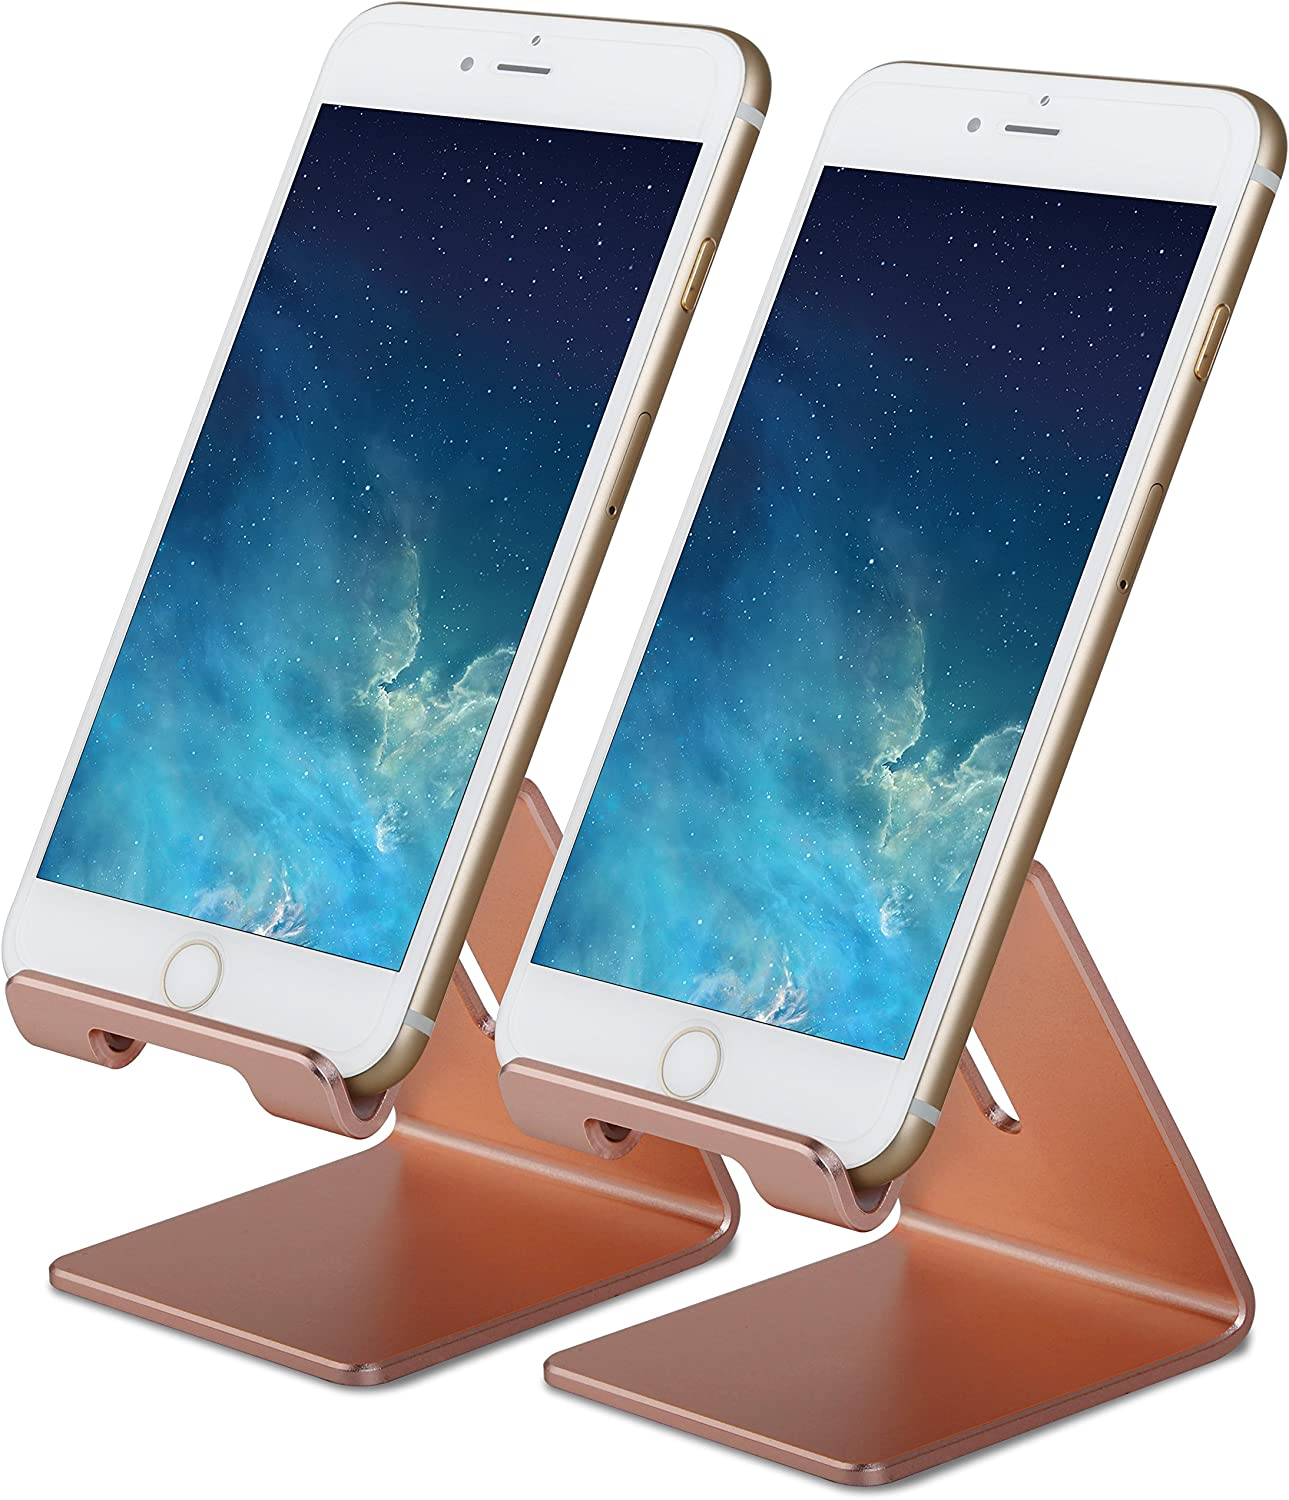 Honsky GEN-2 Universal Aluminum Cell Phone Tablet Desk Charging Stand Portable Hands Free Desktop Display Holder, Compatible with iPhone iPad Mini LG Samsung Android Cellphone, 2 Sets, Rose Gold